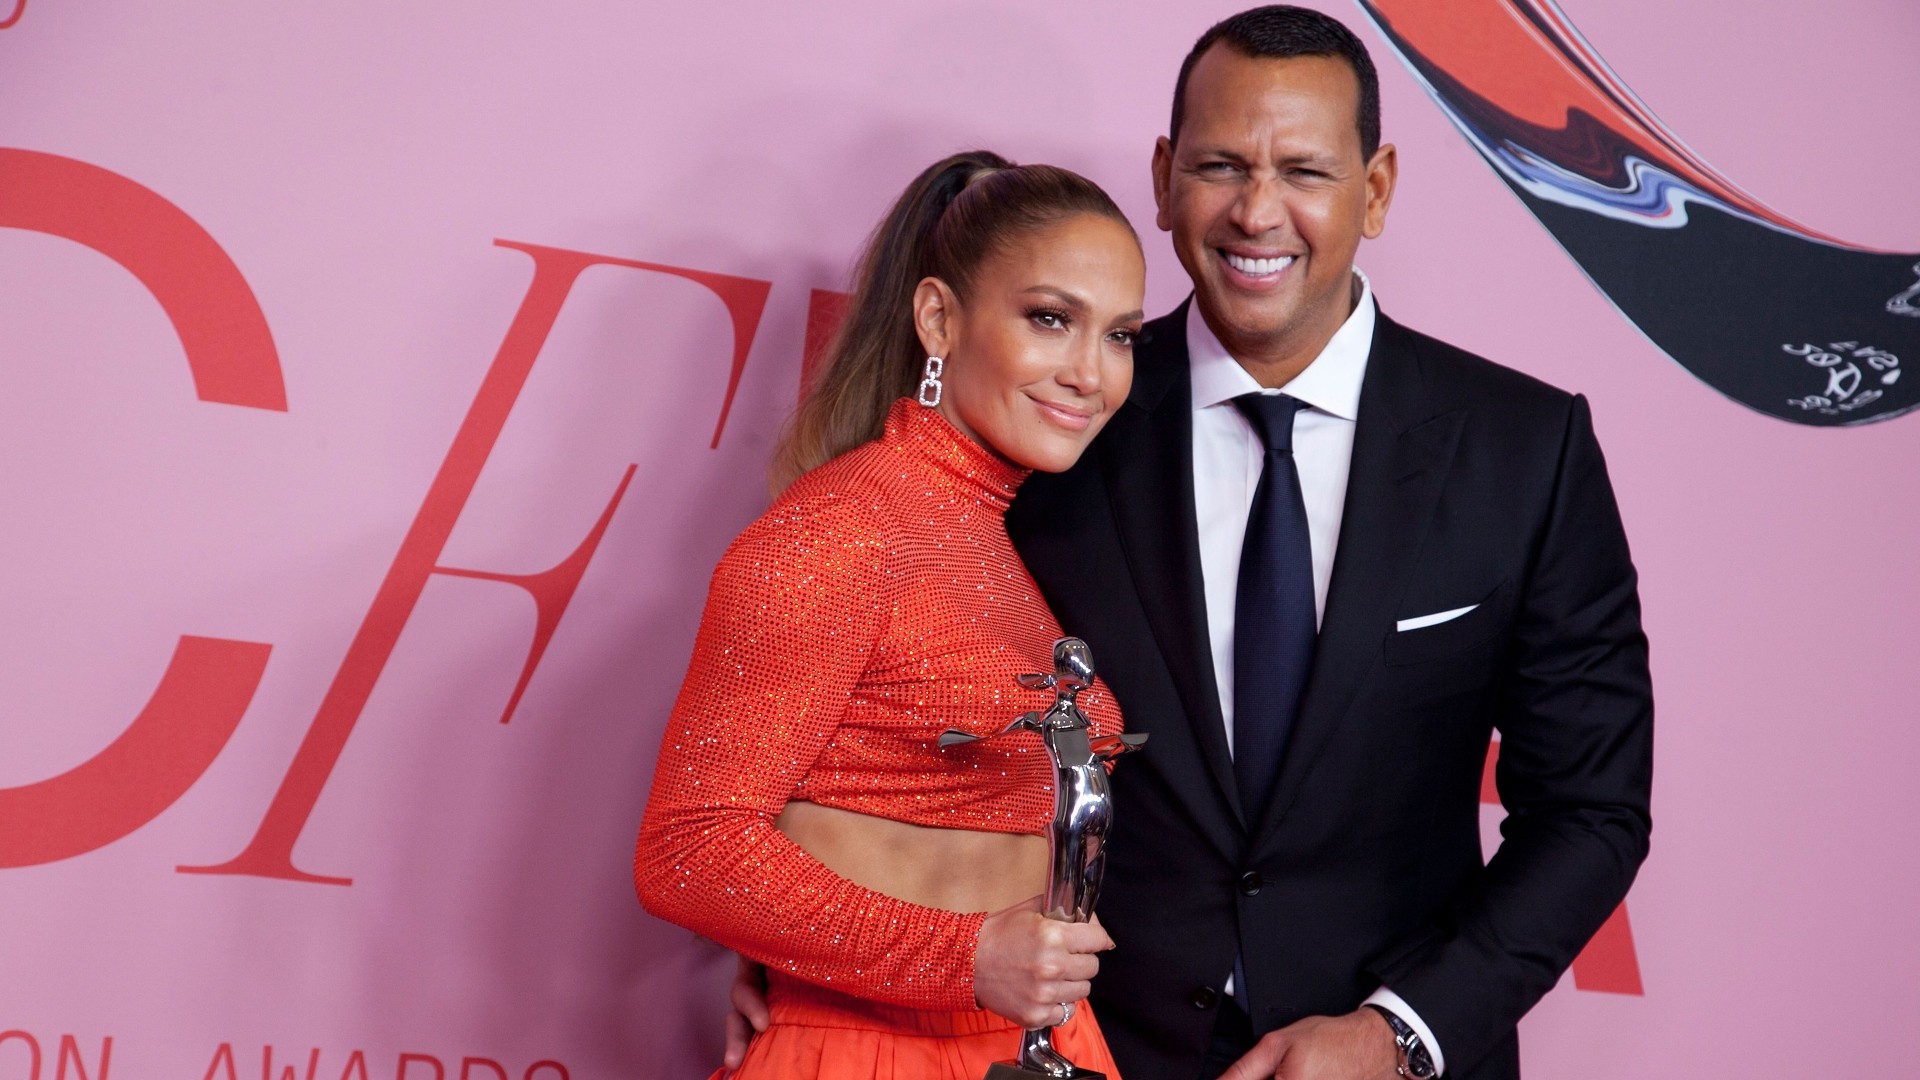 Jennifer Lopez and Alex Rodriguez have Broken Up and Canceled the Wedding